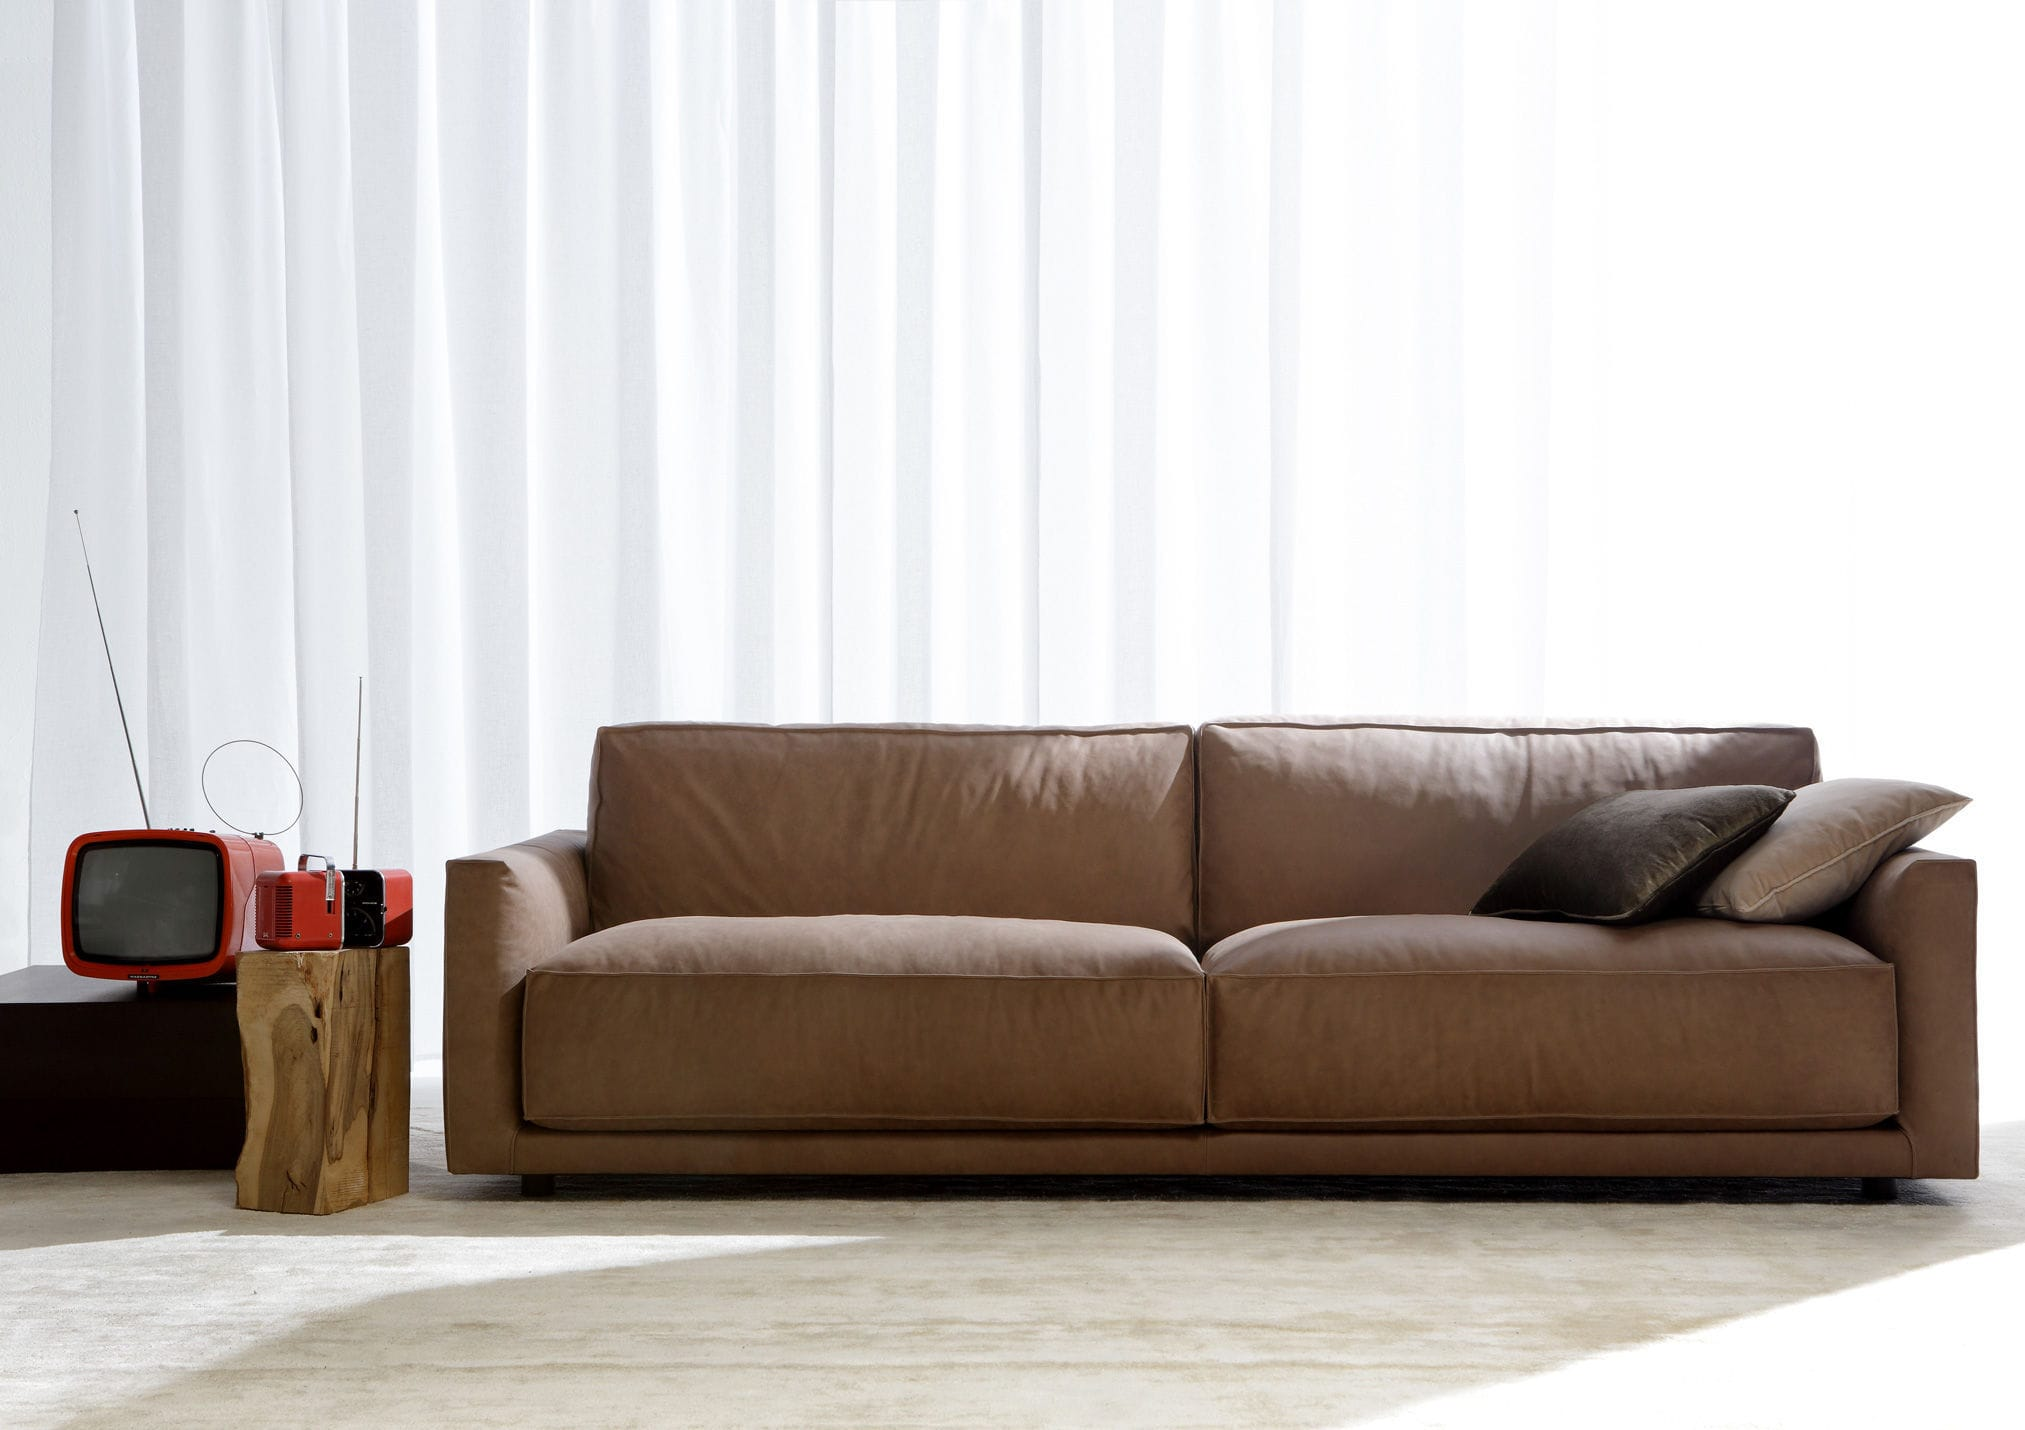 Modular sofa contemporary leather fabric RIBOT BERTO SALOTTI